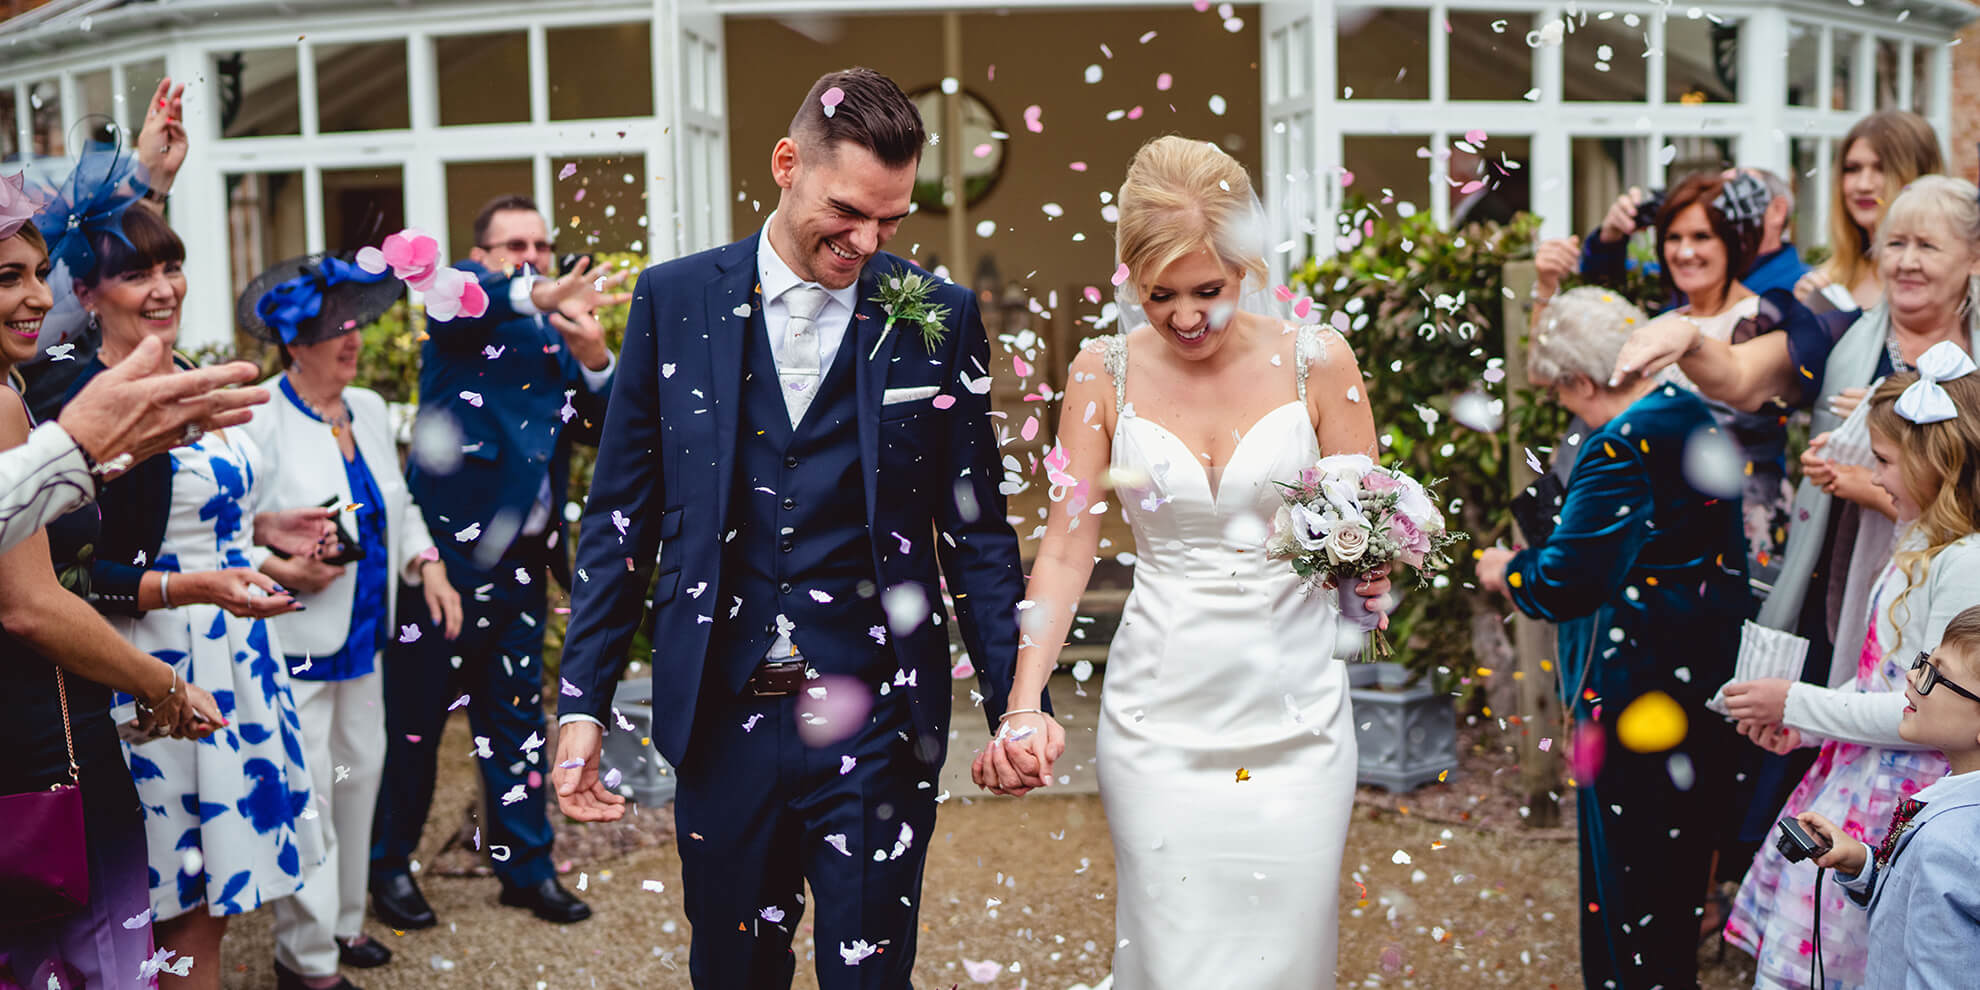 Top 8 Words Of Wisdom From Real Couples - Just married